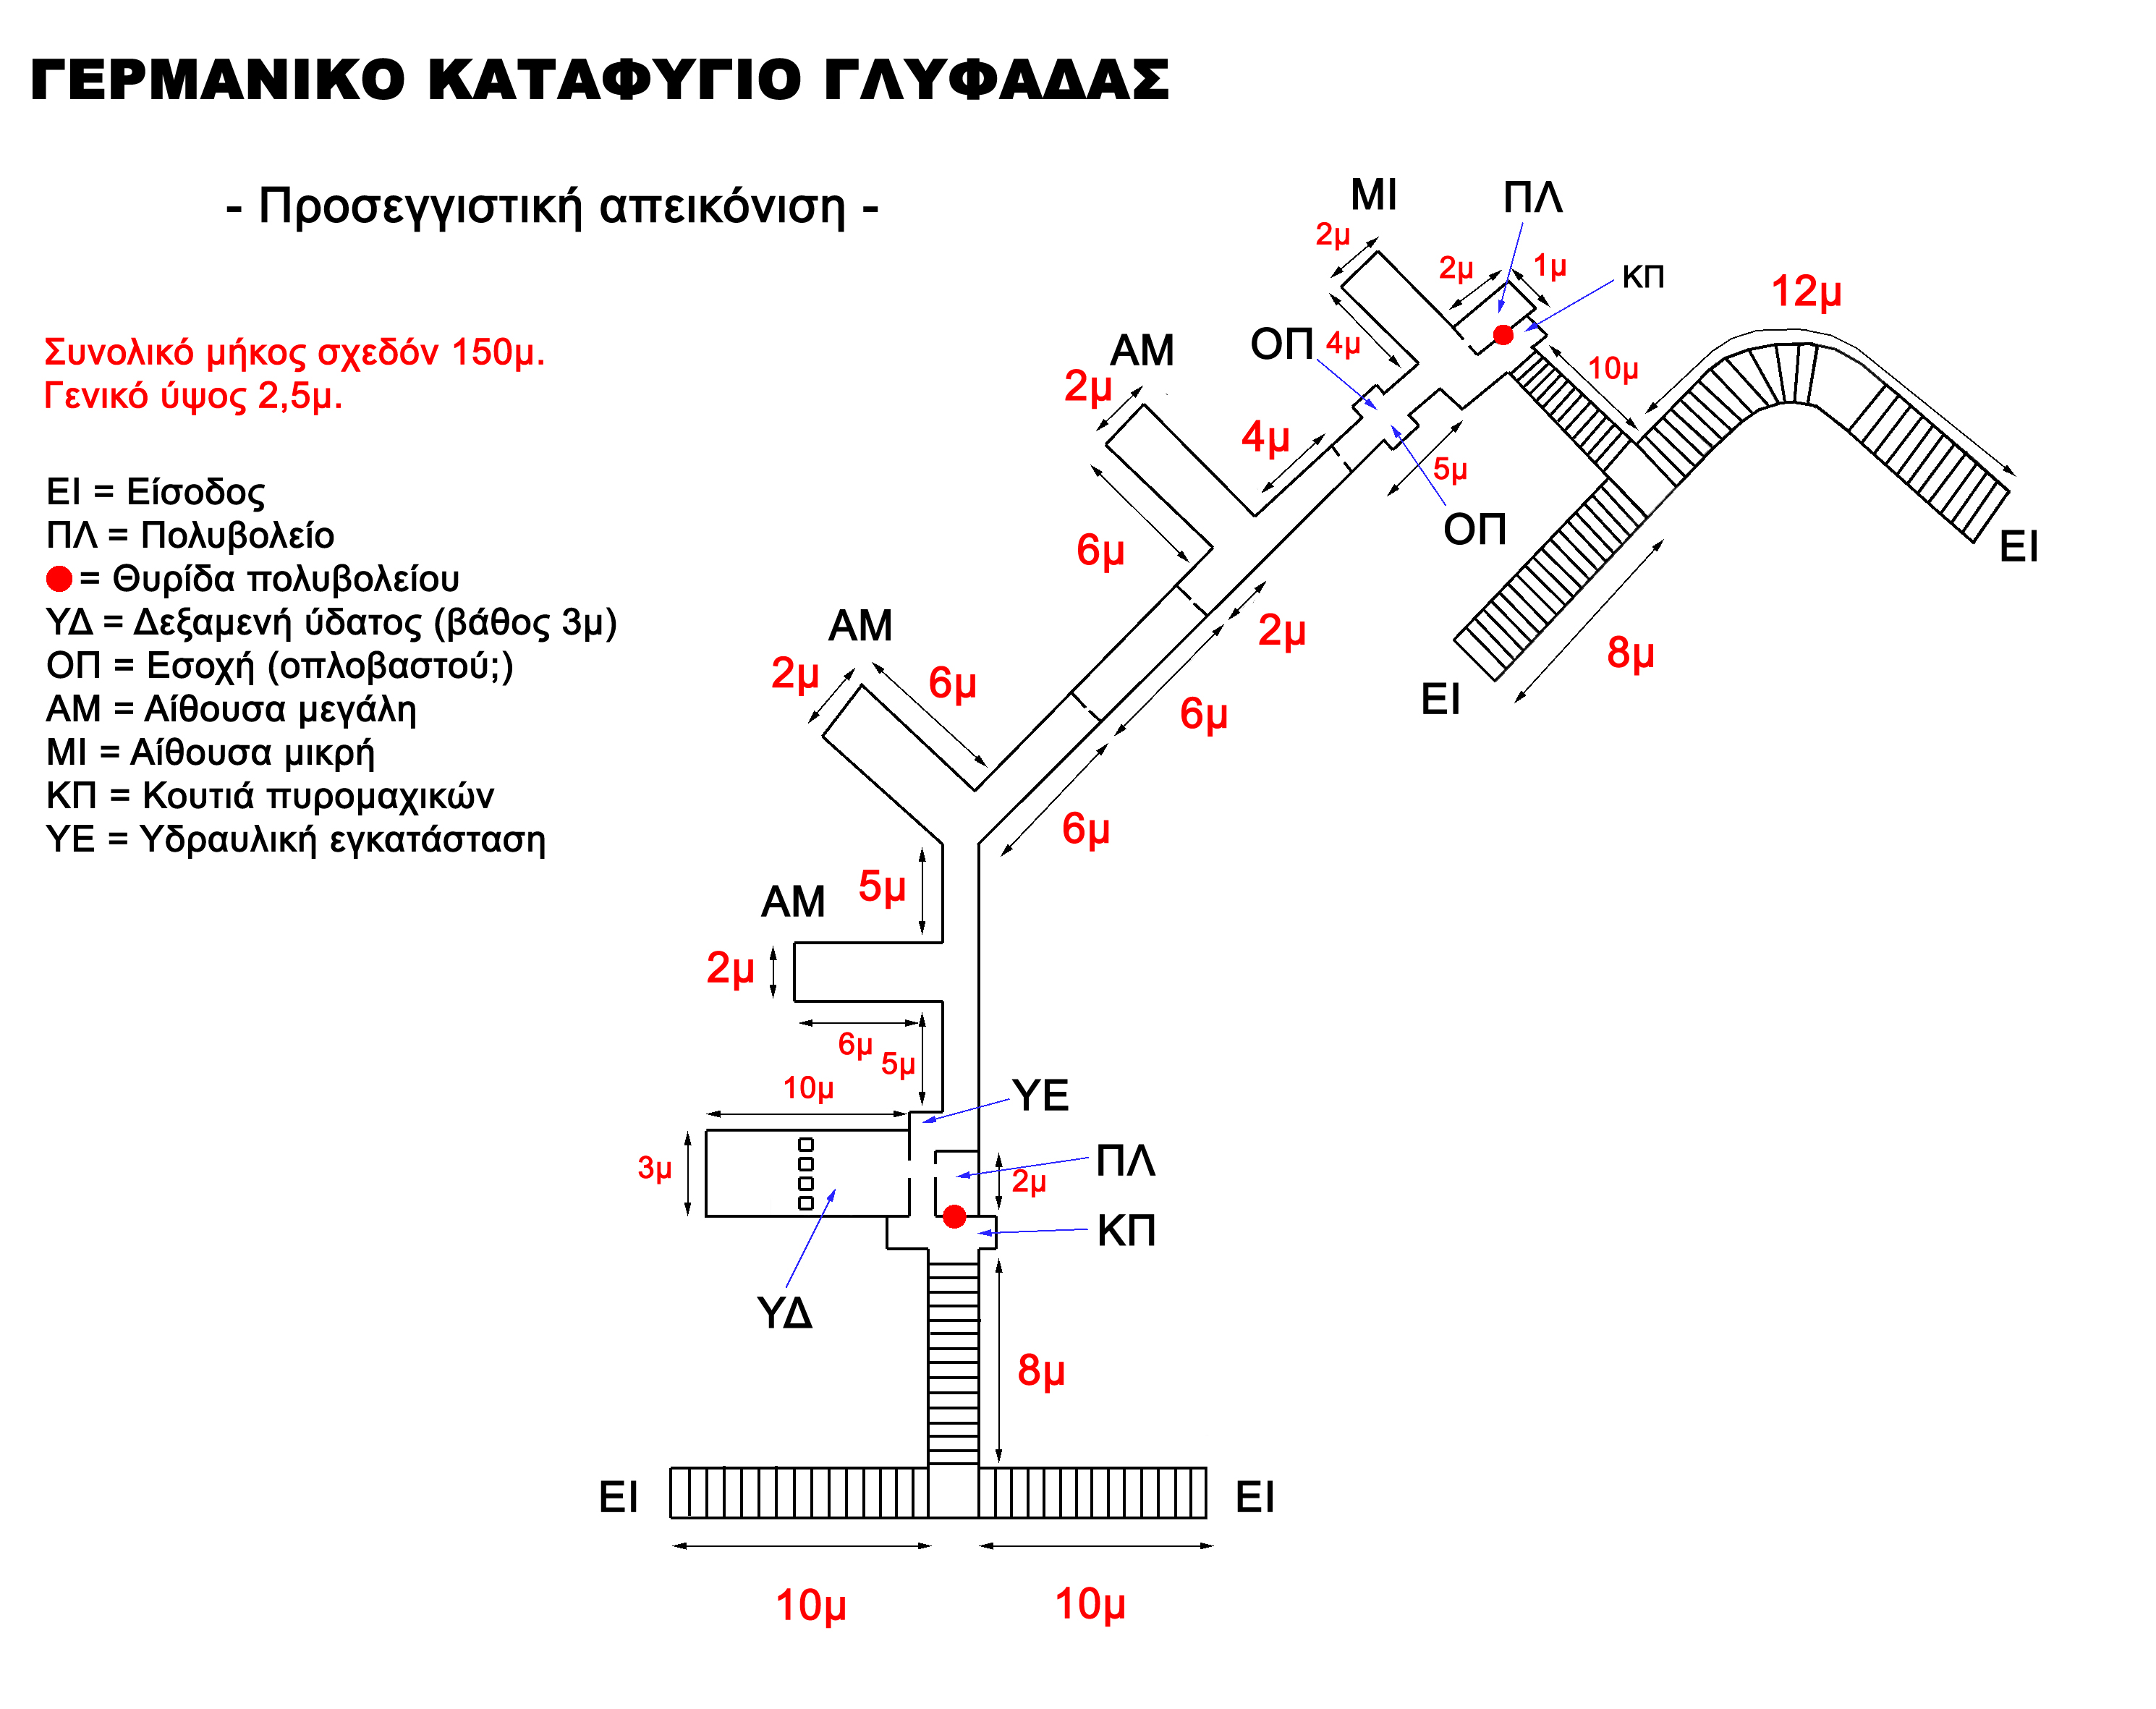 The plan of the second bunker